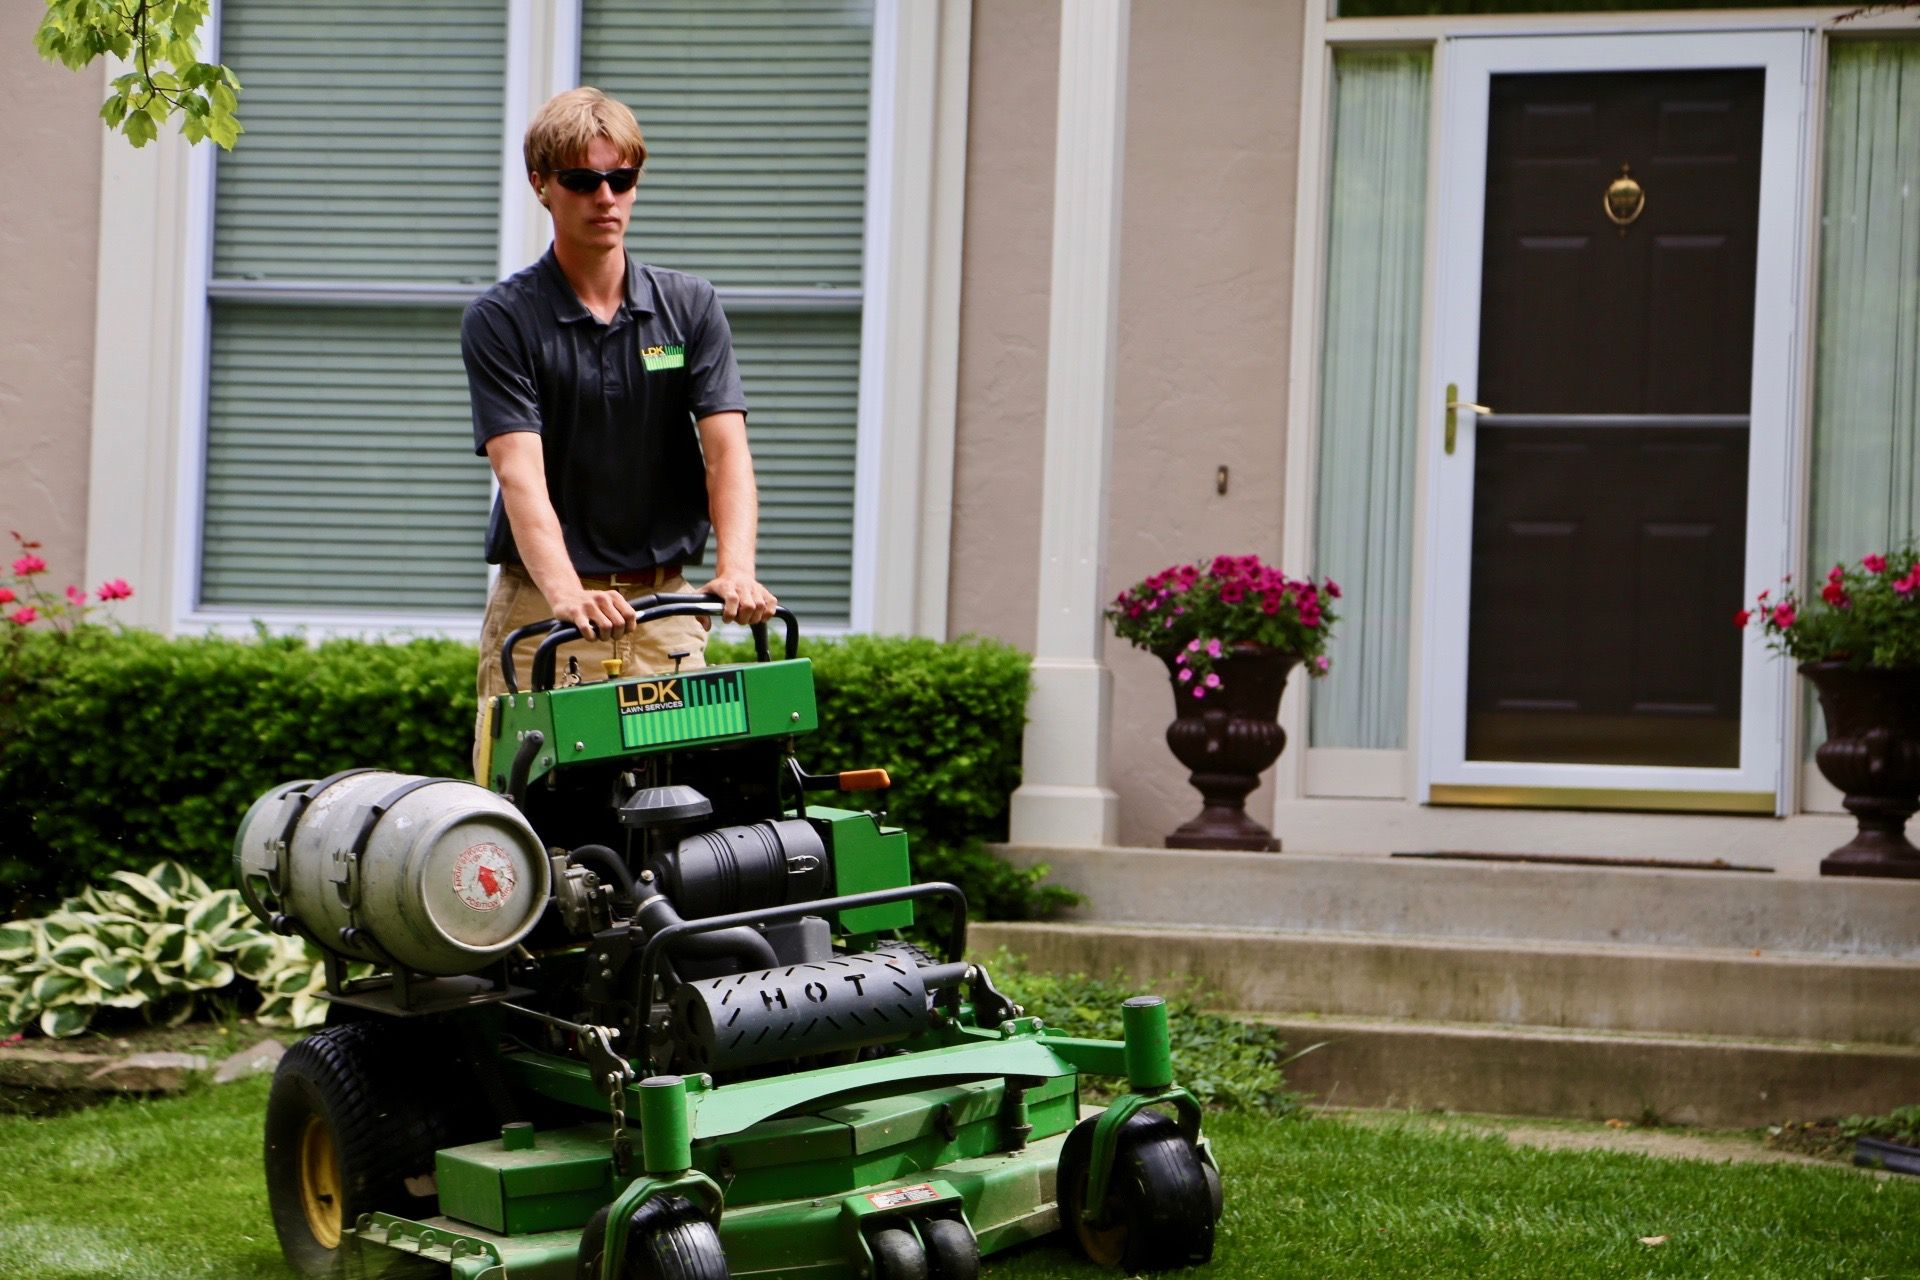 Mowing Services In Lenexa Kansas Mowing Services Lawn Service Mowing